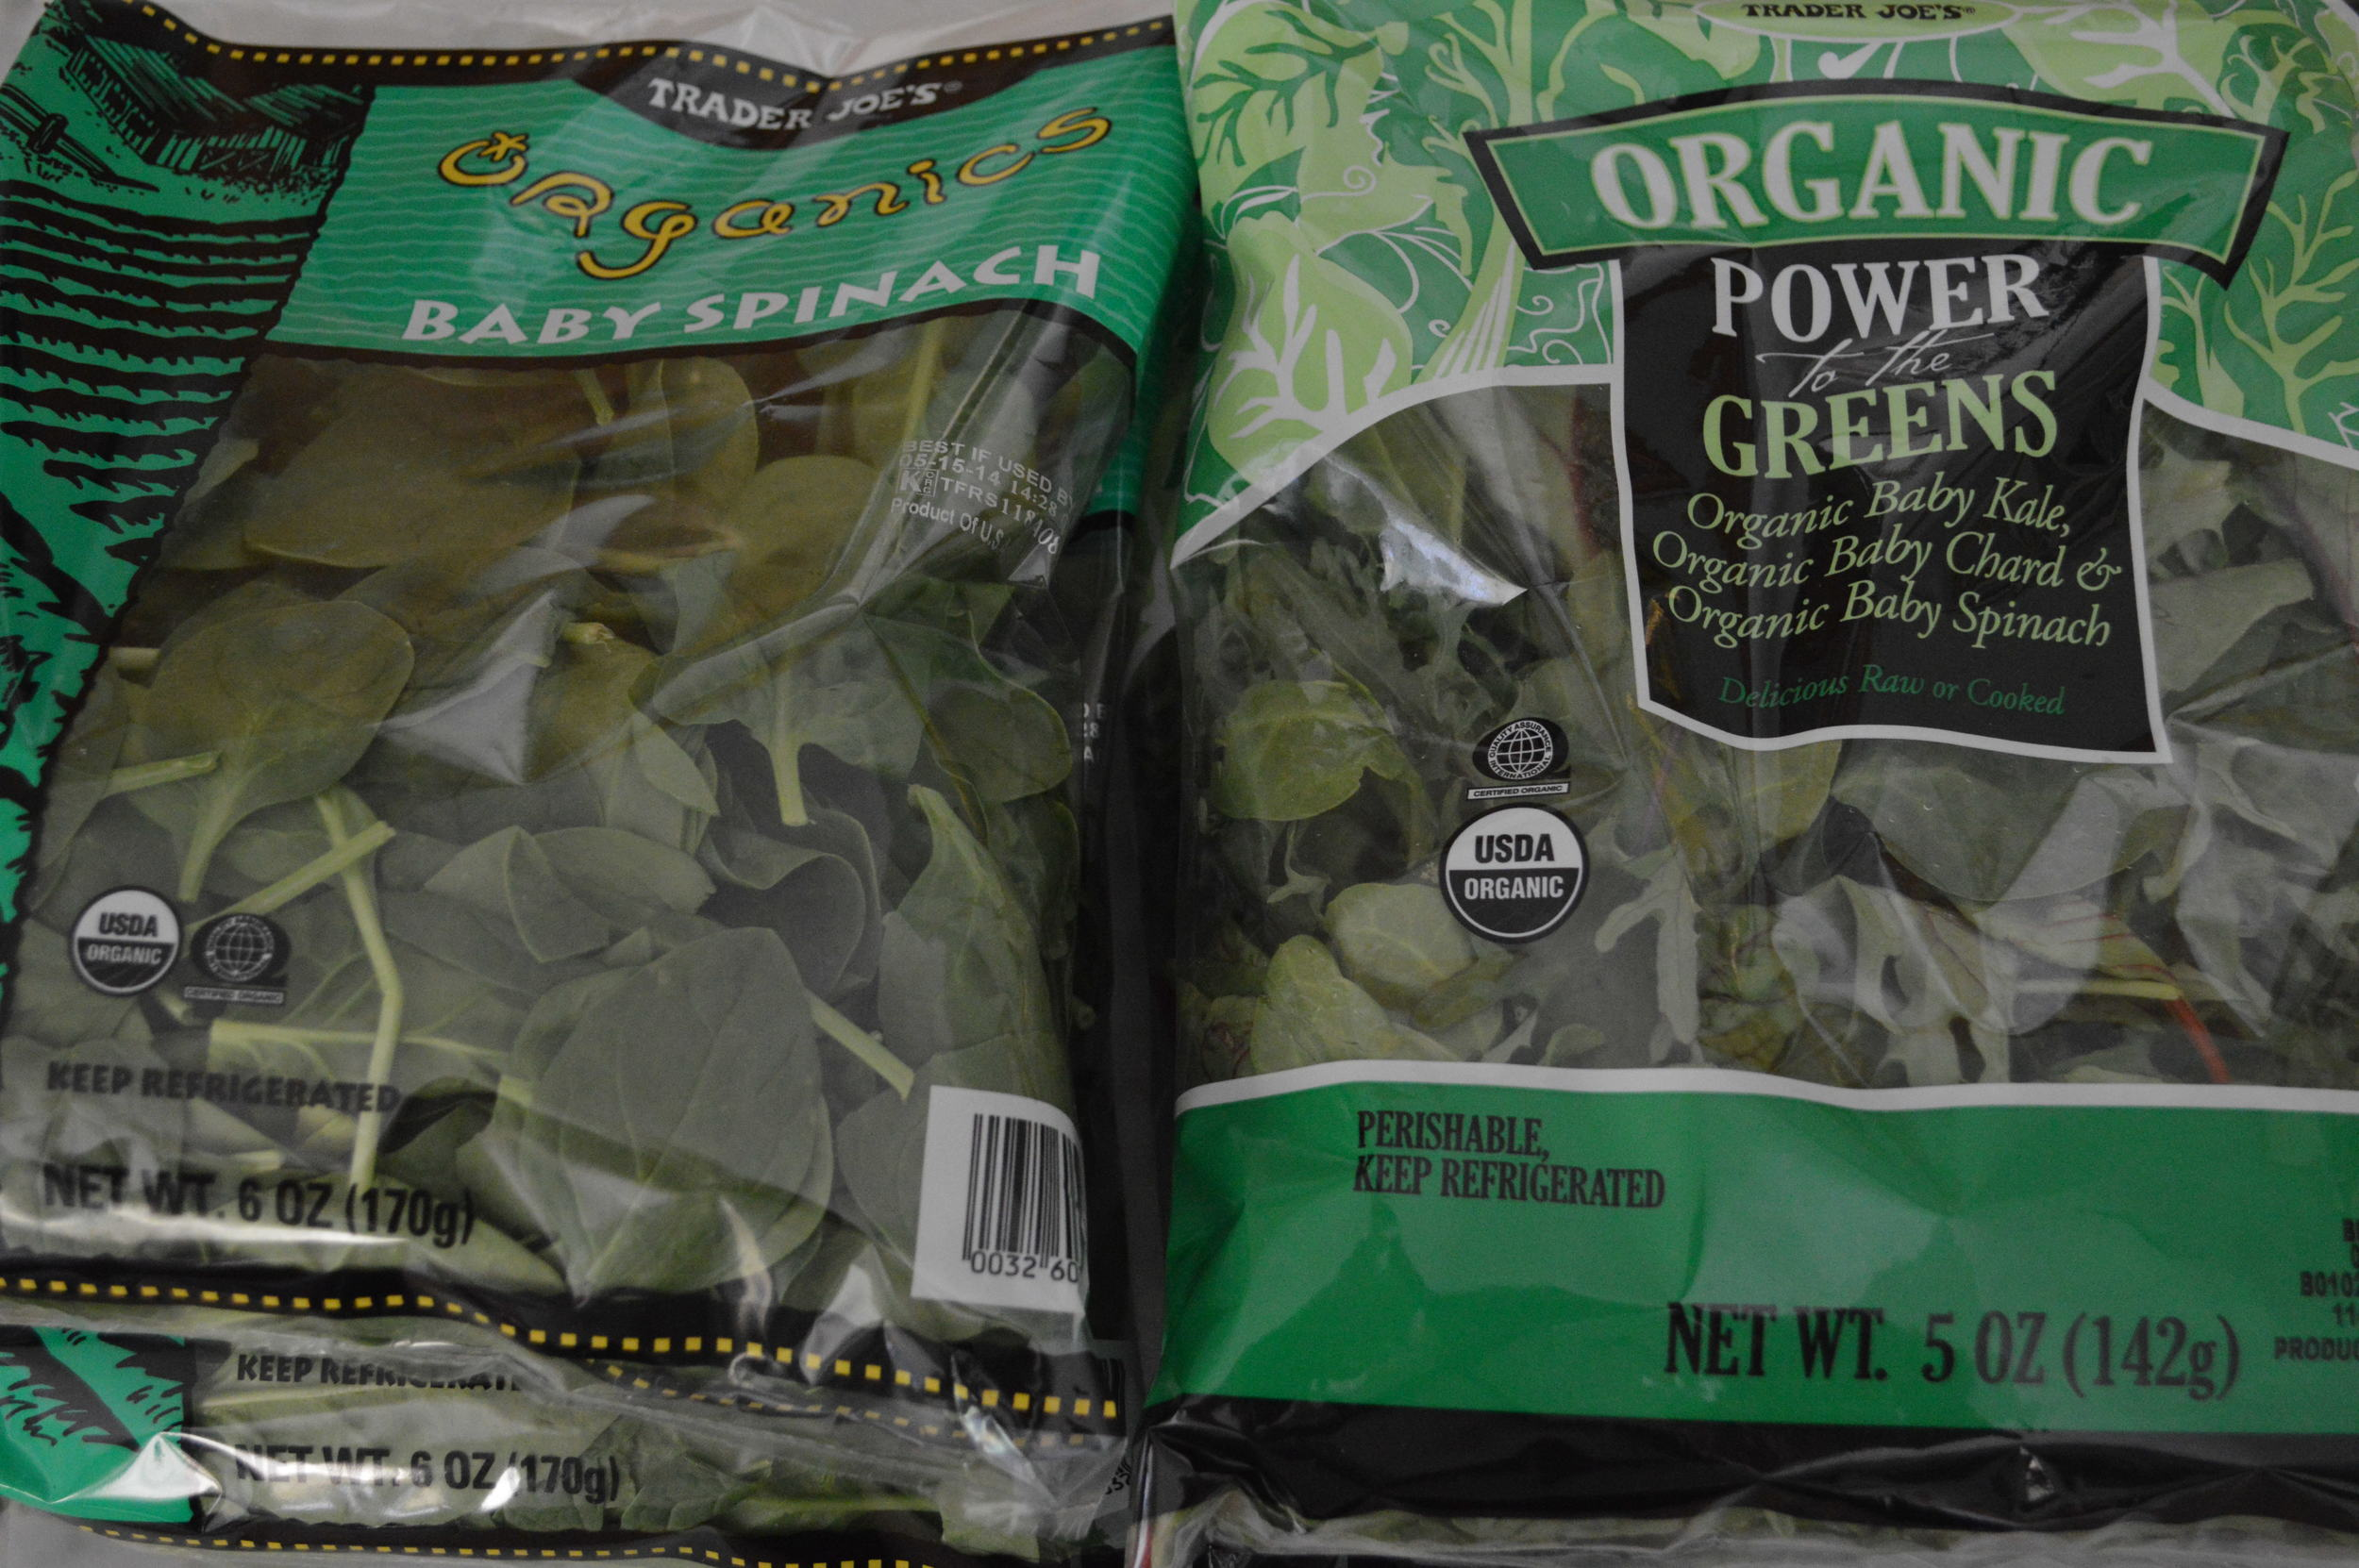 spinach & power greens